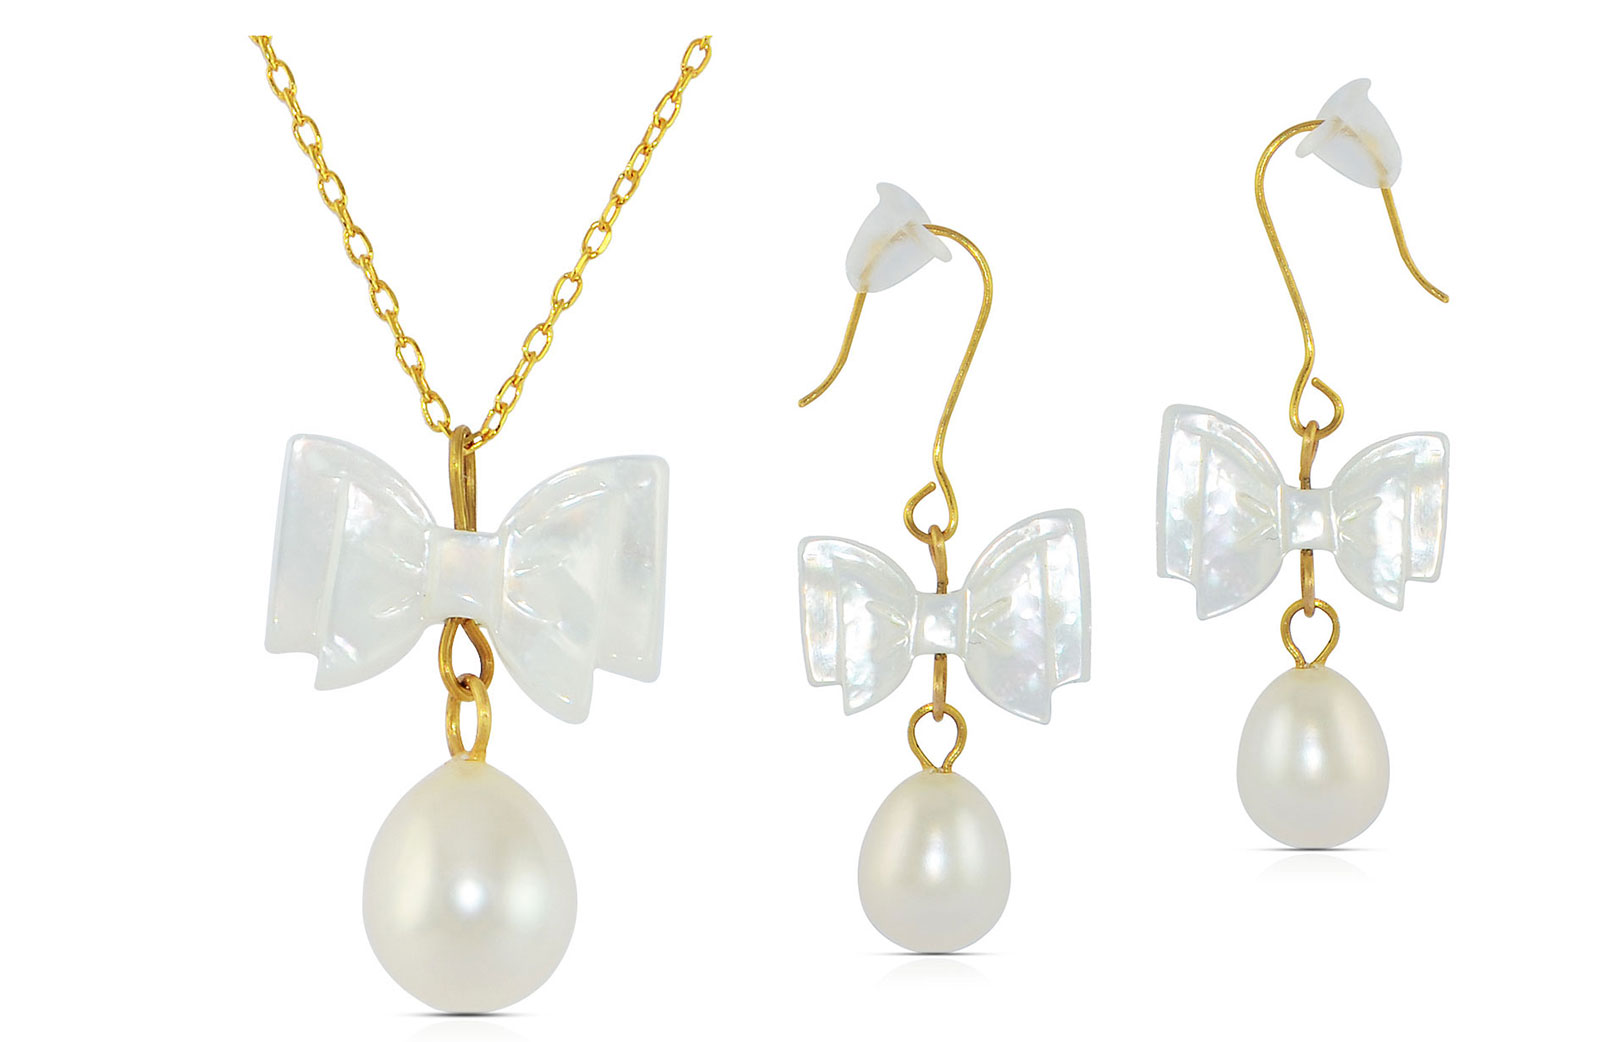 Vera Perla 10K Gold  Pearl and Bow MOP Delicate Jewelry Set